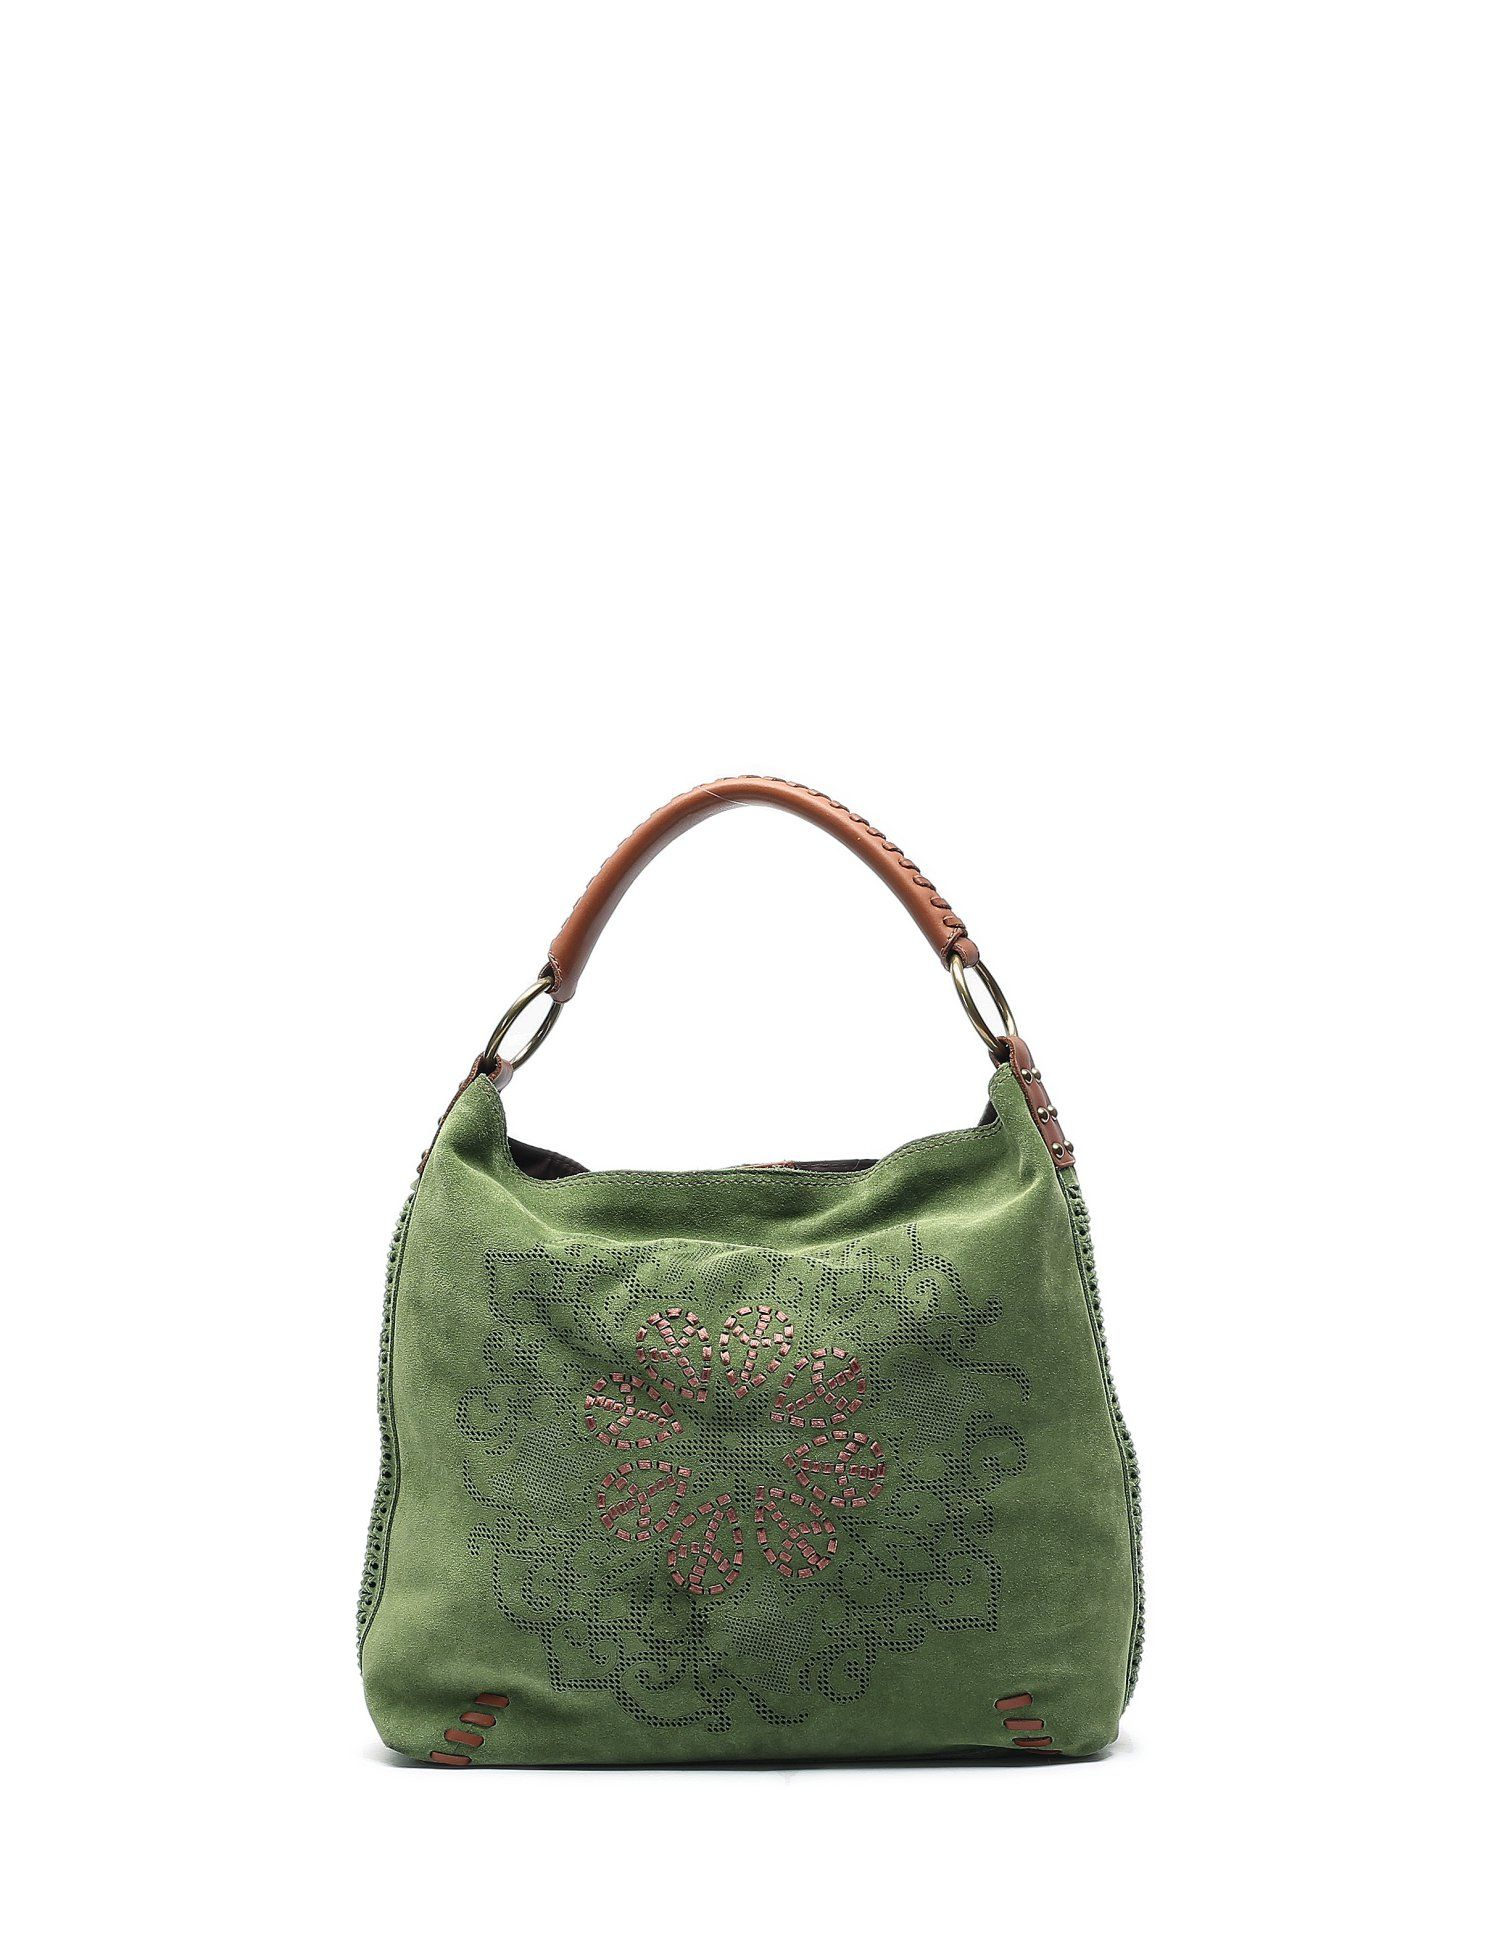 dc79f149ddc Lucky Brand Green Suede Purse